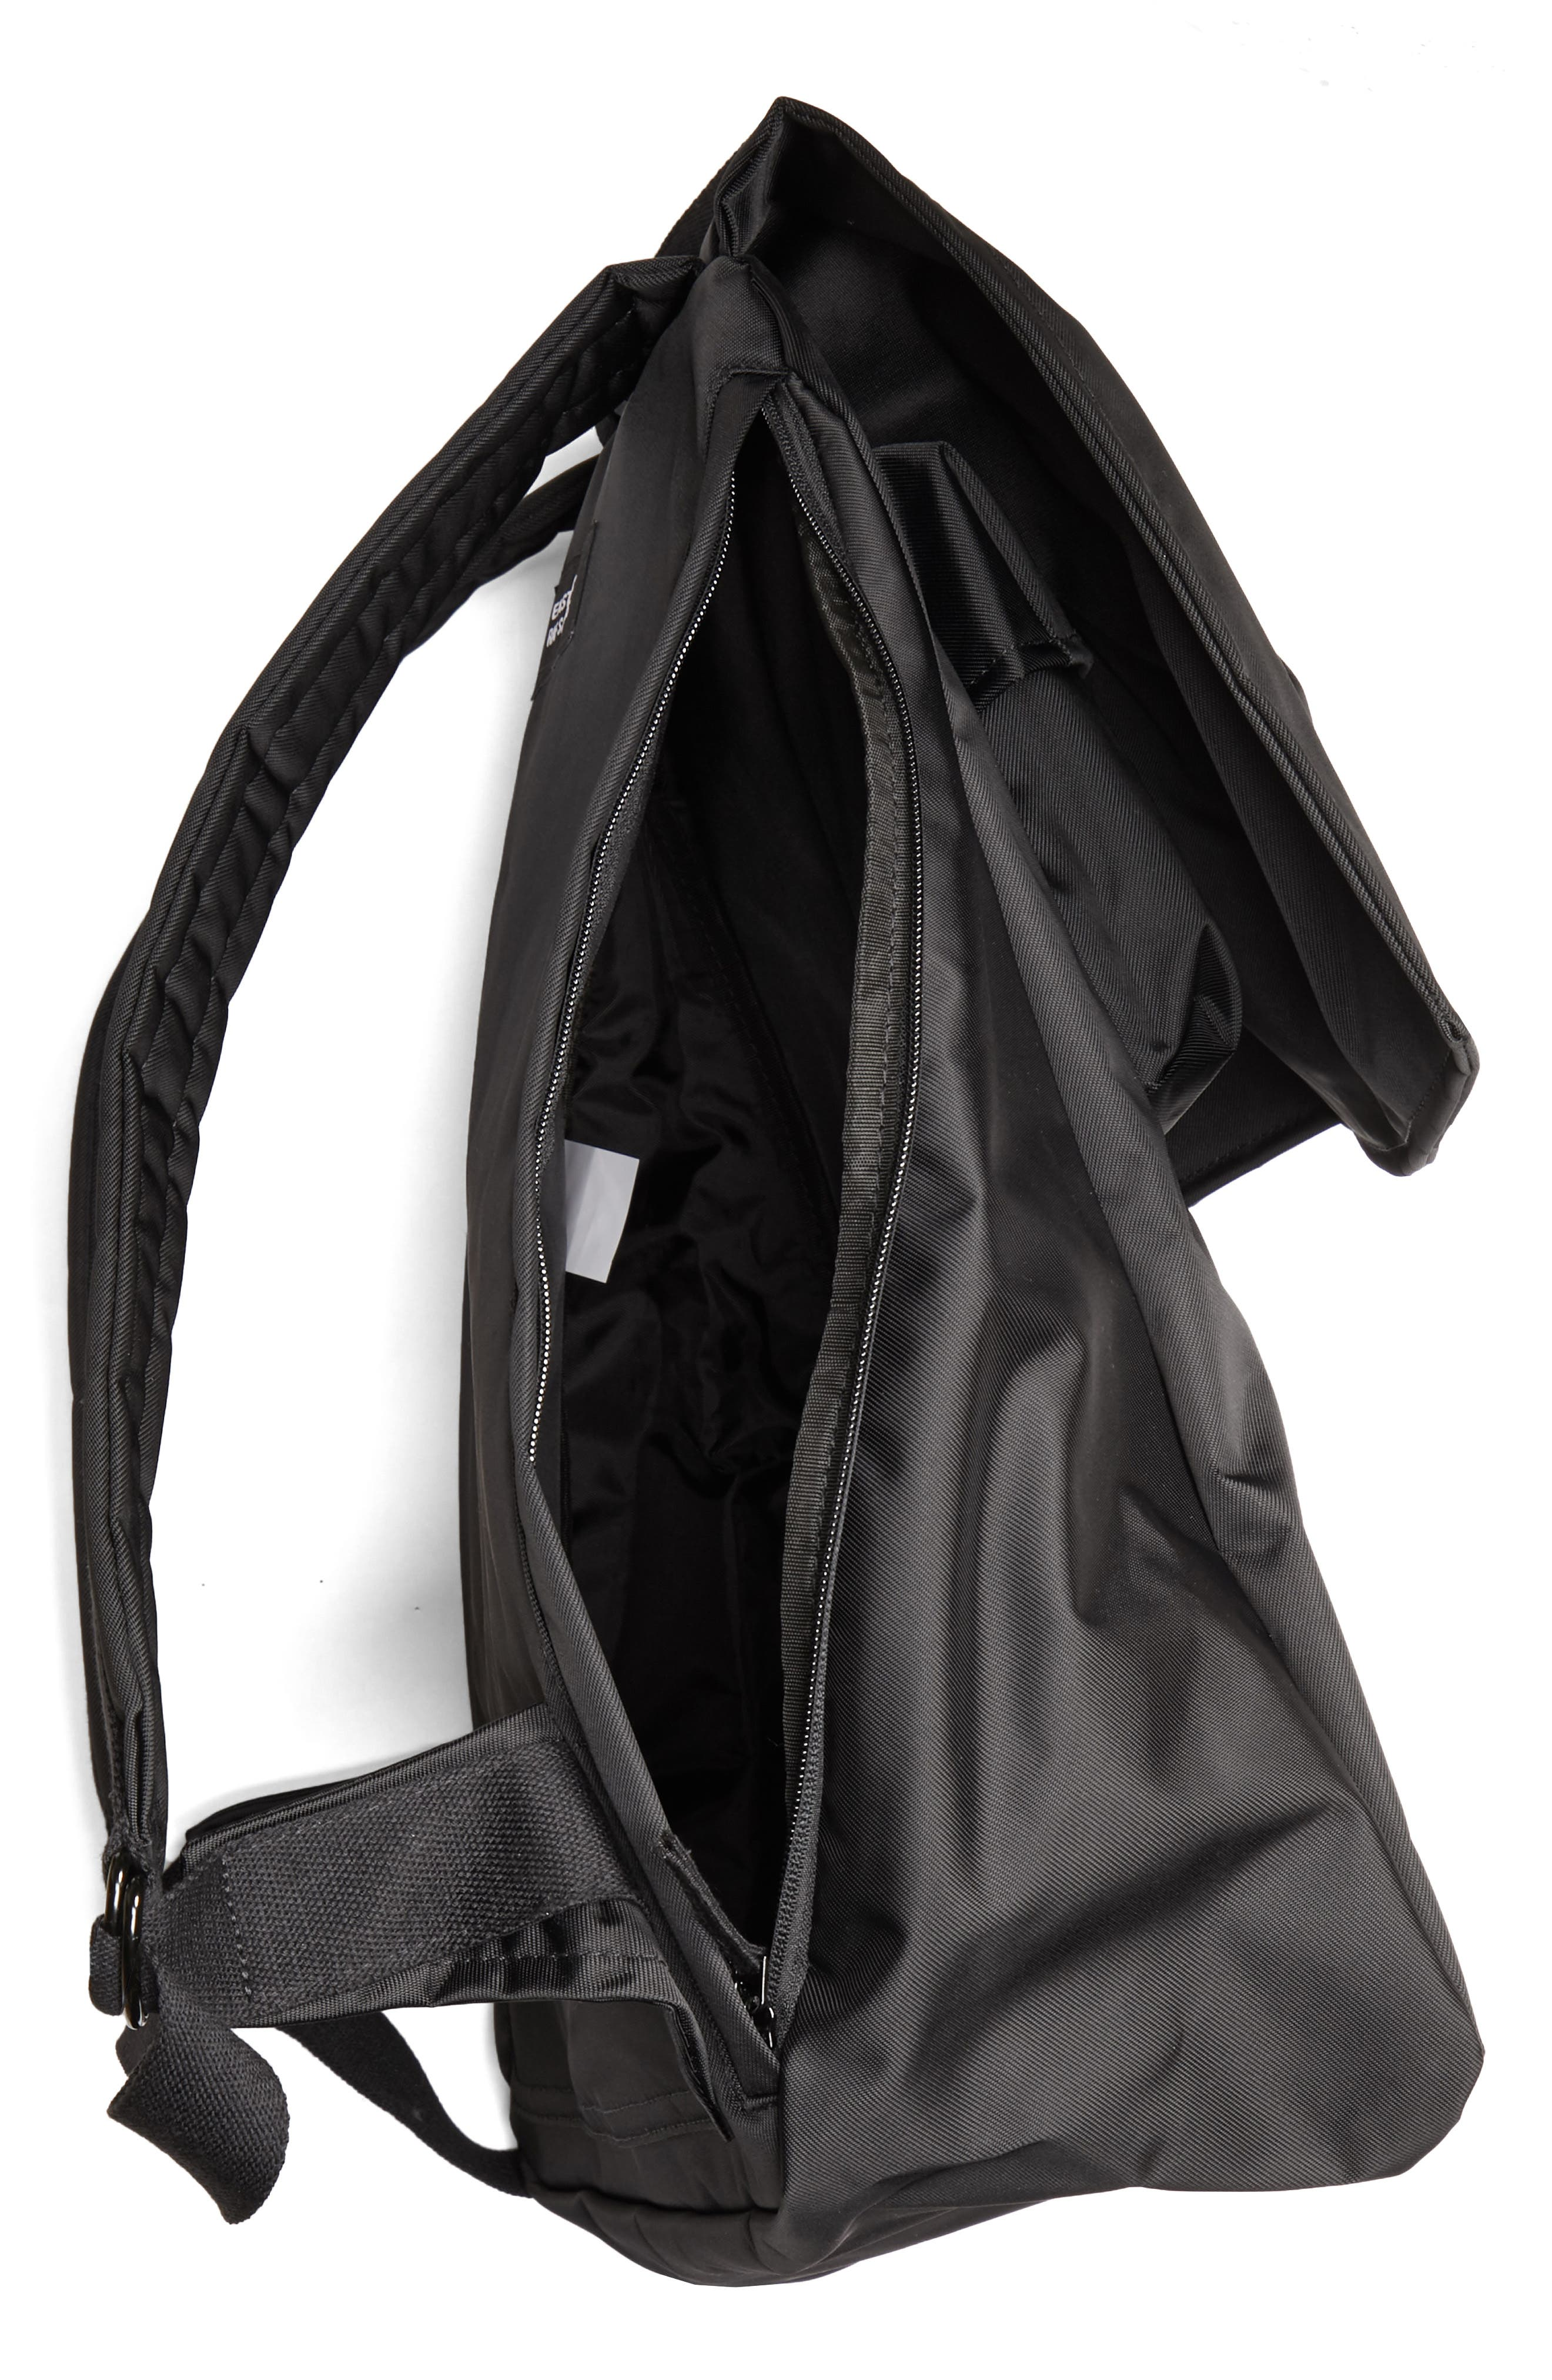 RAF SIMONS,                             Eastpak x Raf Simons Backpack,                             Alternate thumbnail 4, color,                             BLACK